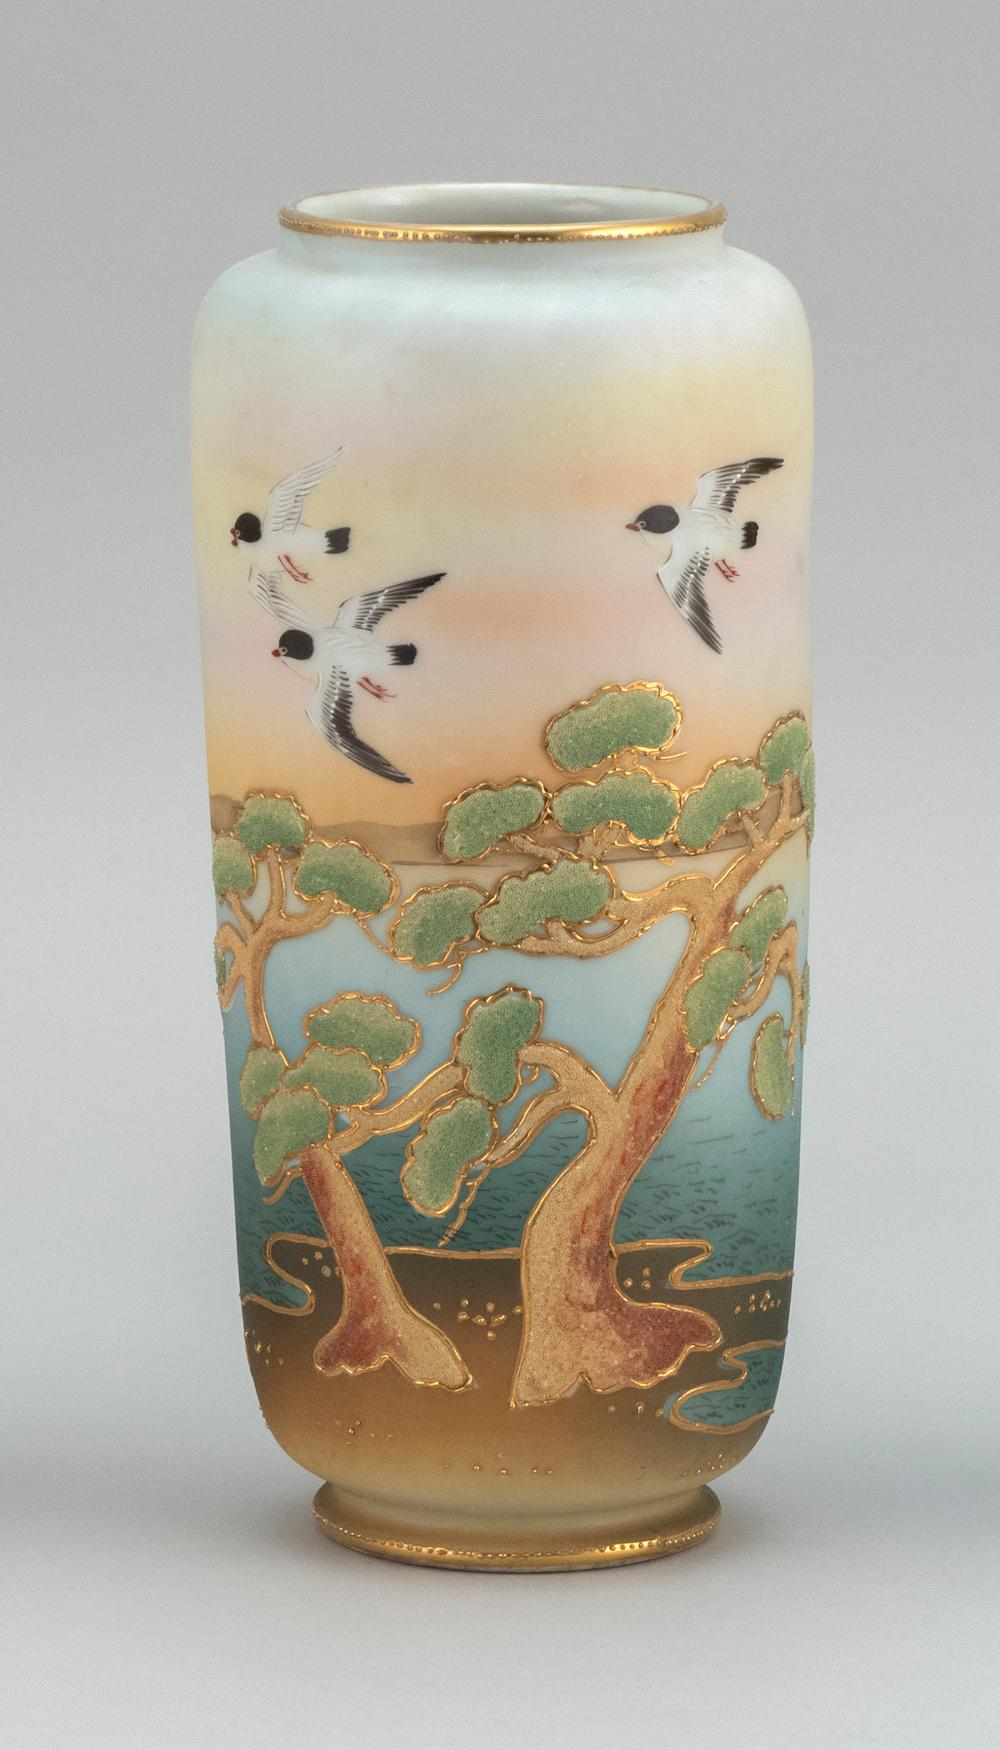 "CORALINE NIPPON PORCELAIN VASE Cylindrical, with sparrow and pine tree design. Height 9.75""."